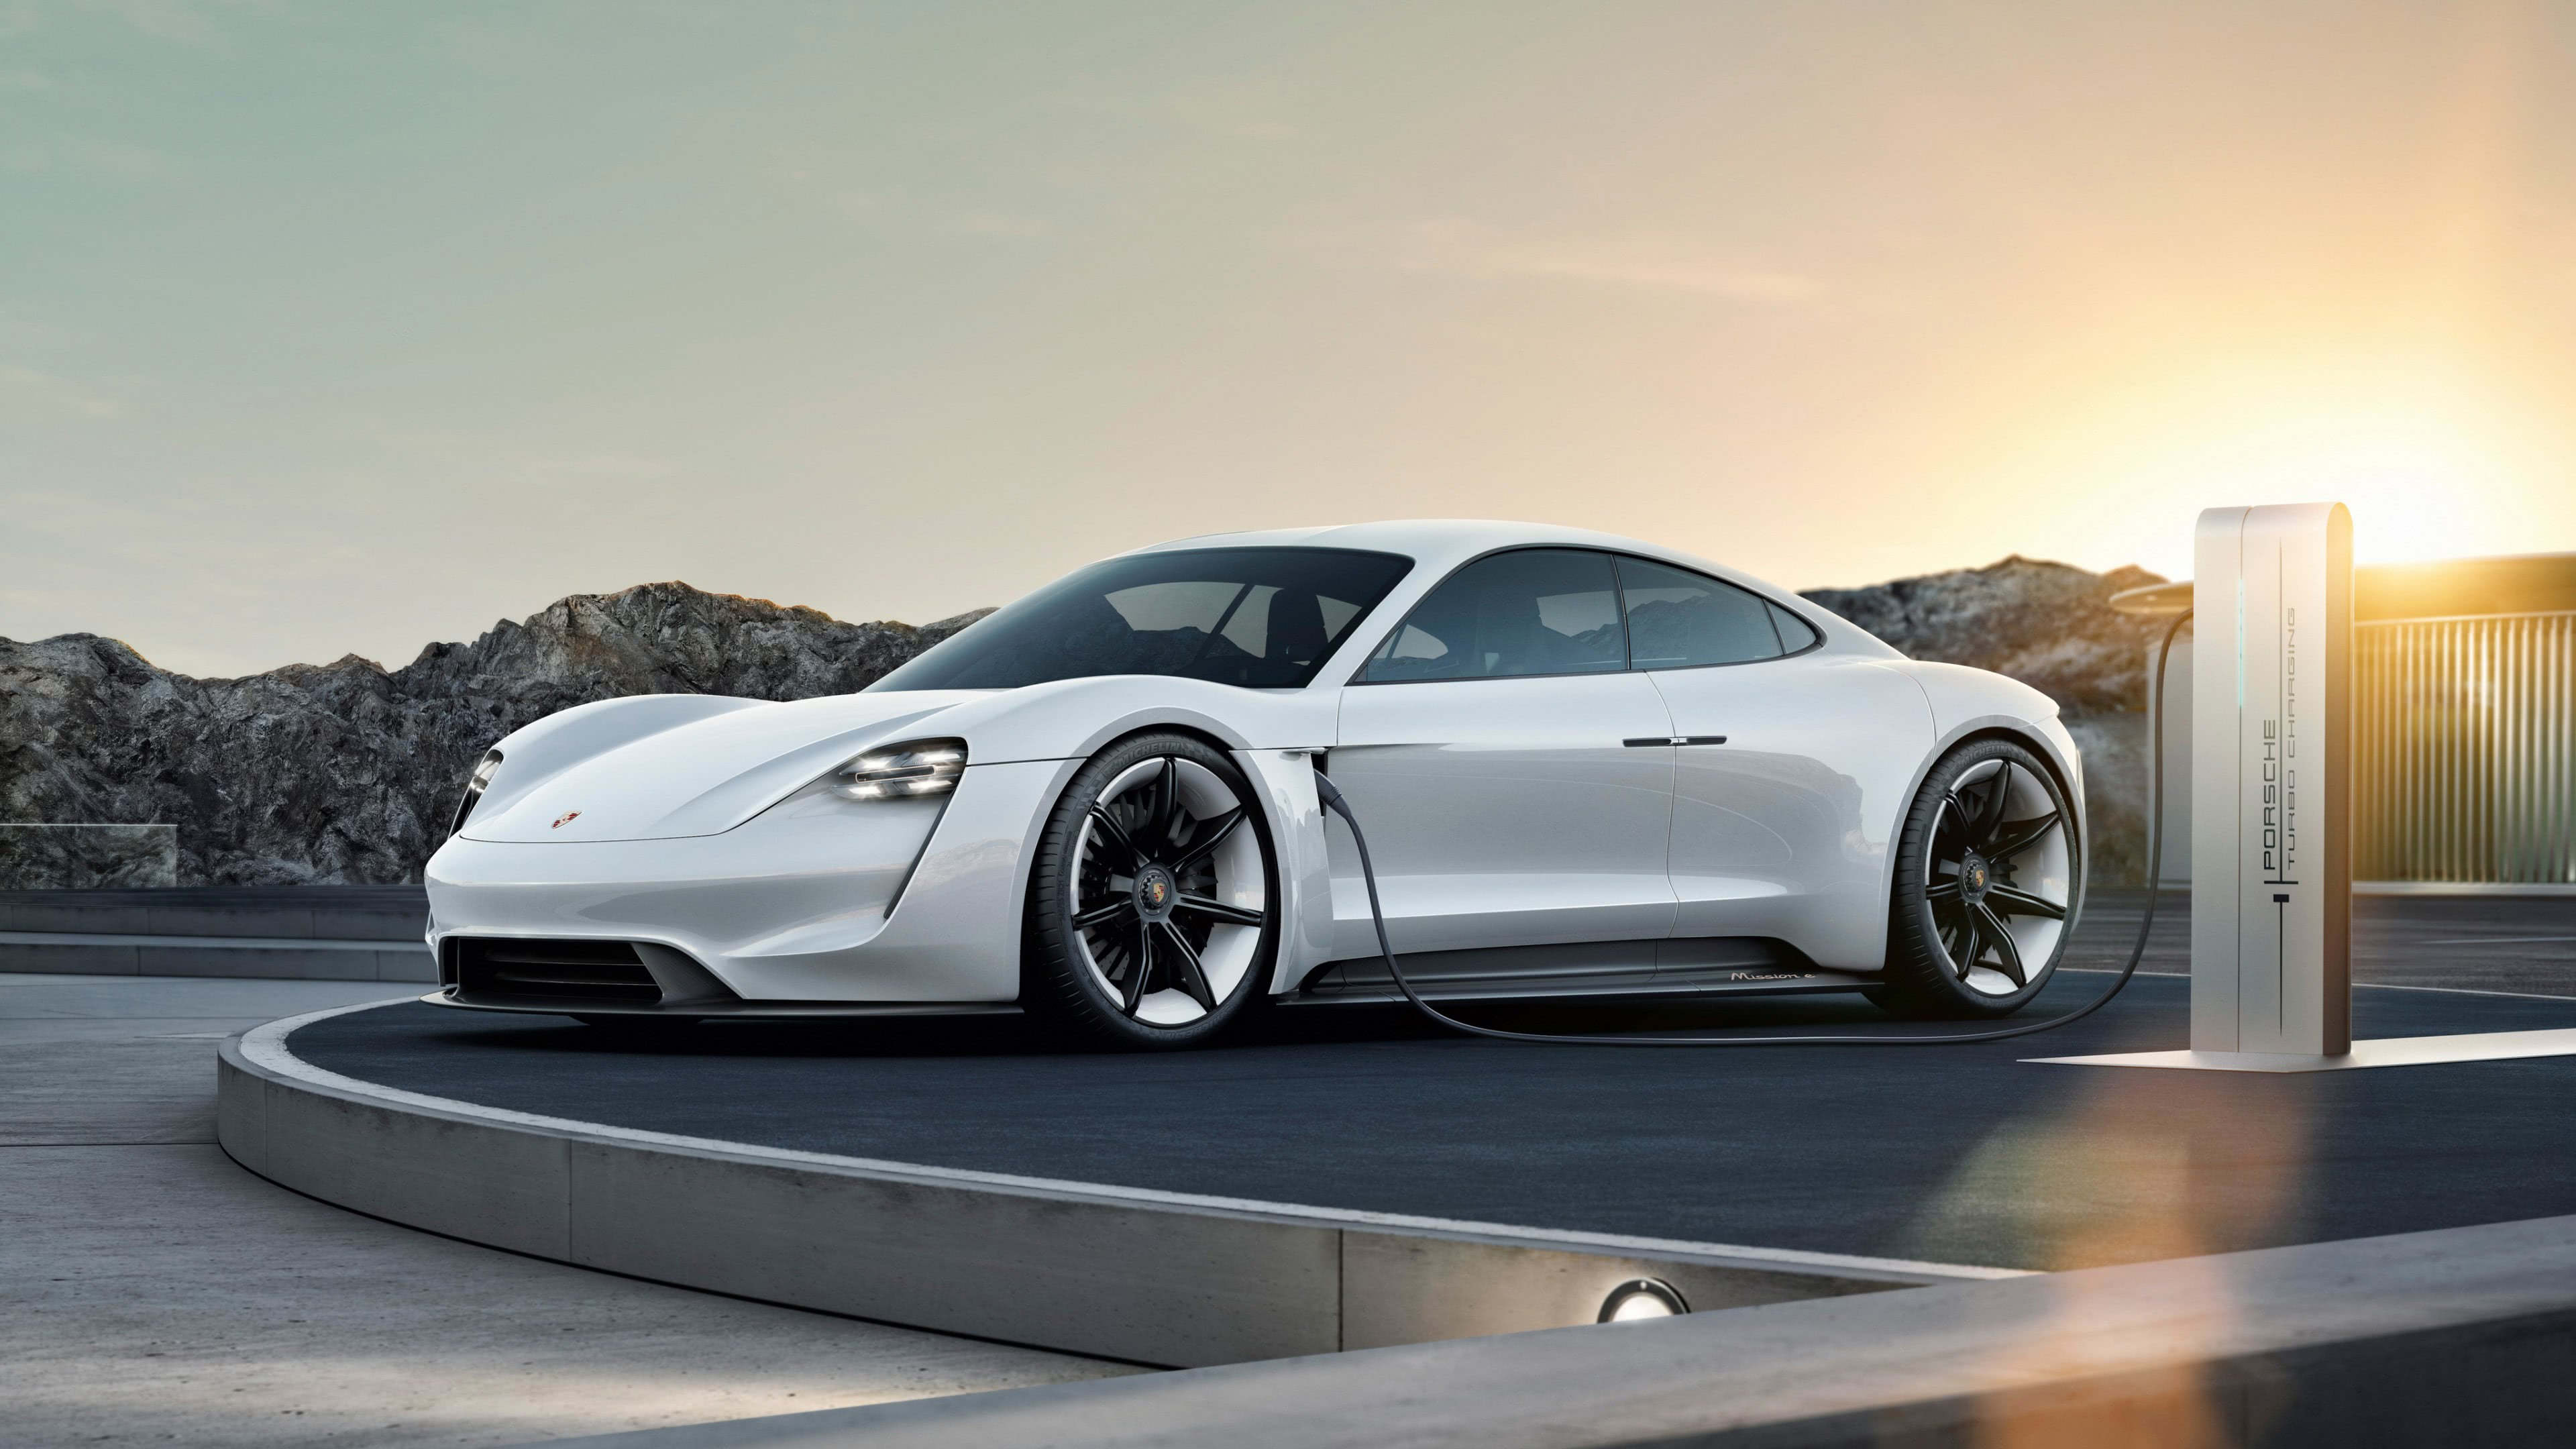 Porsche Taycan Electric UHD 4K Wallpaper Pixelz 3840x2160